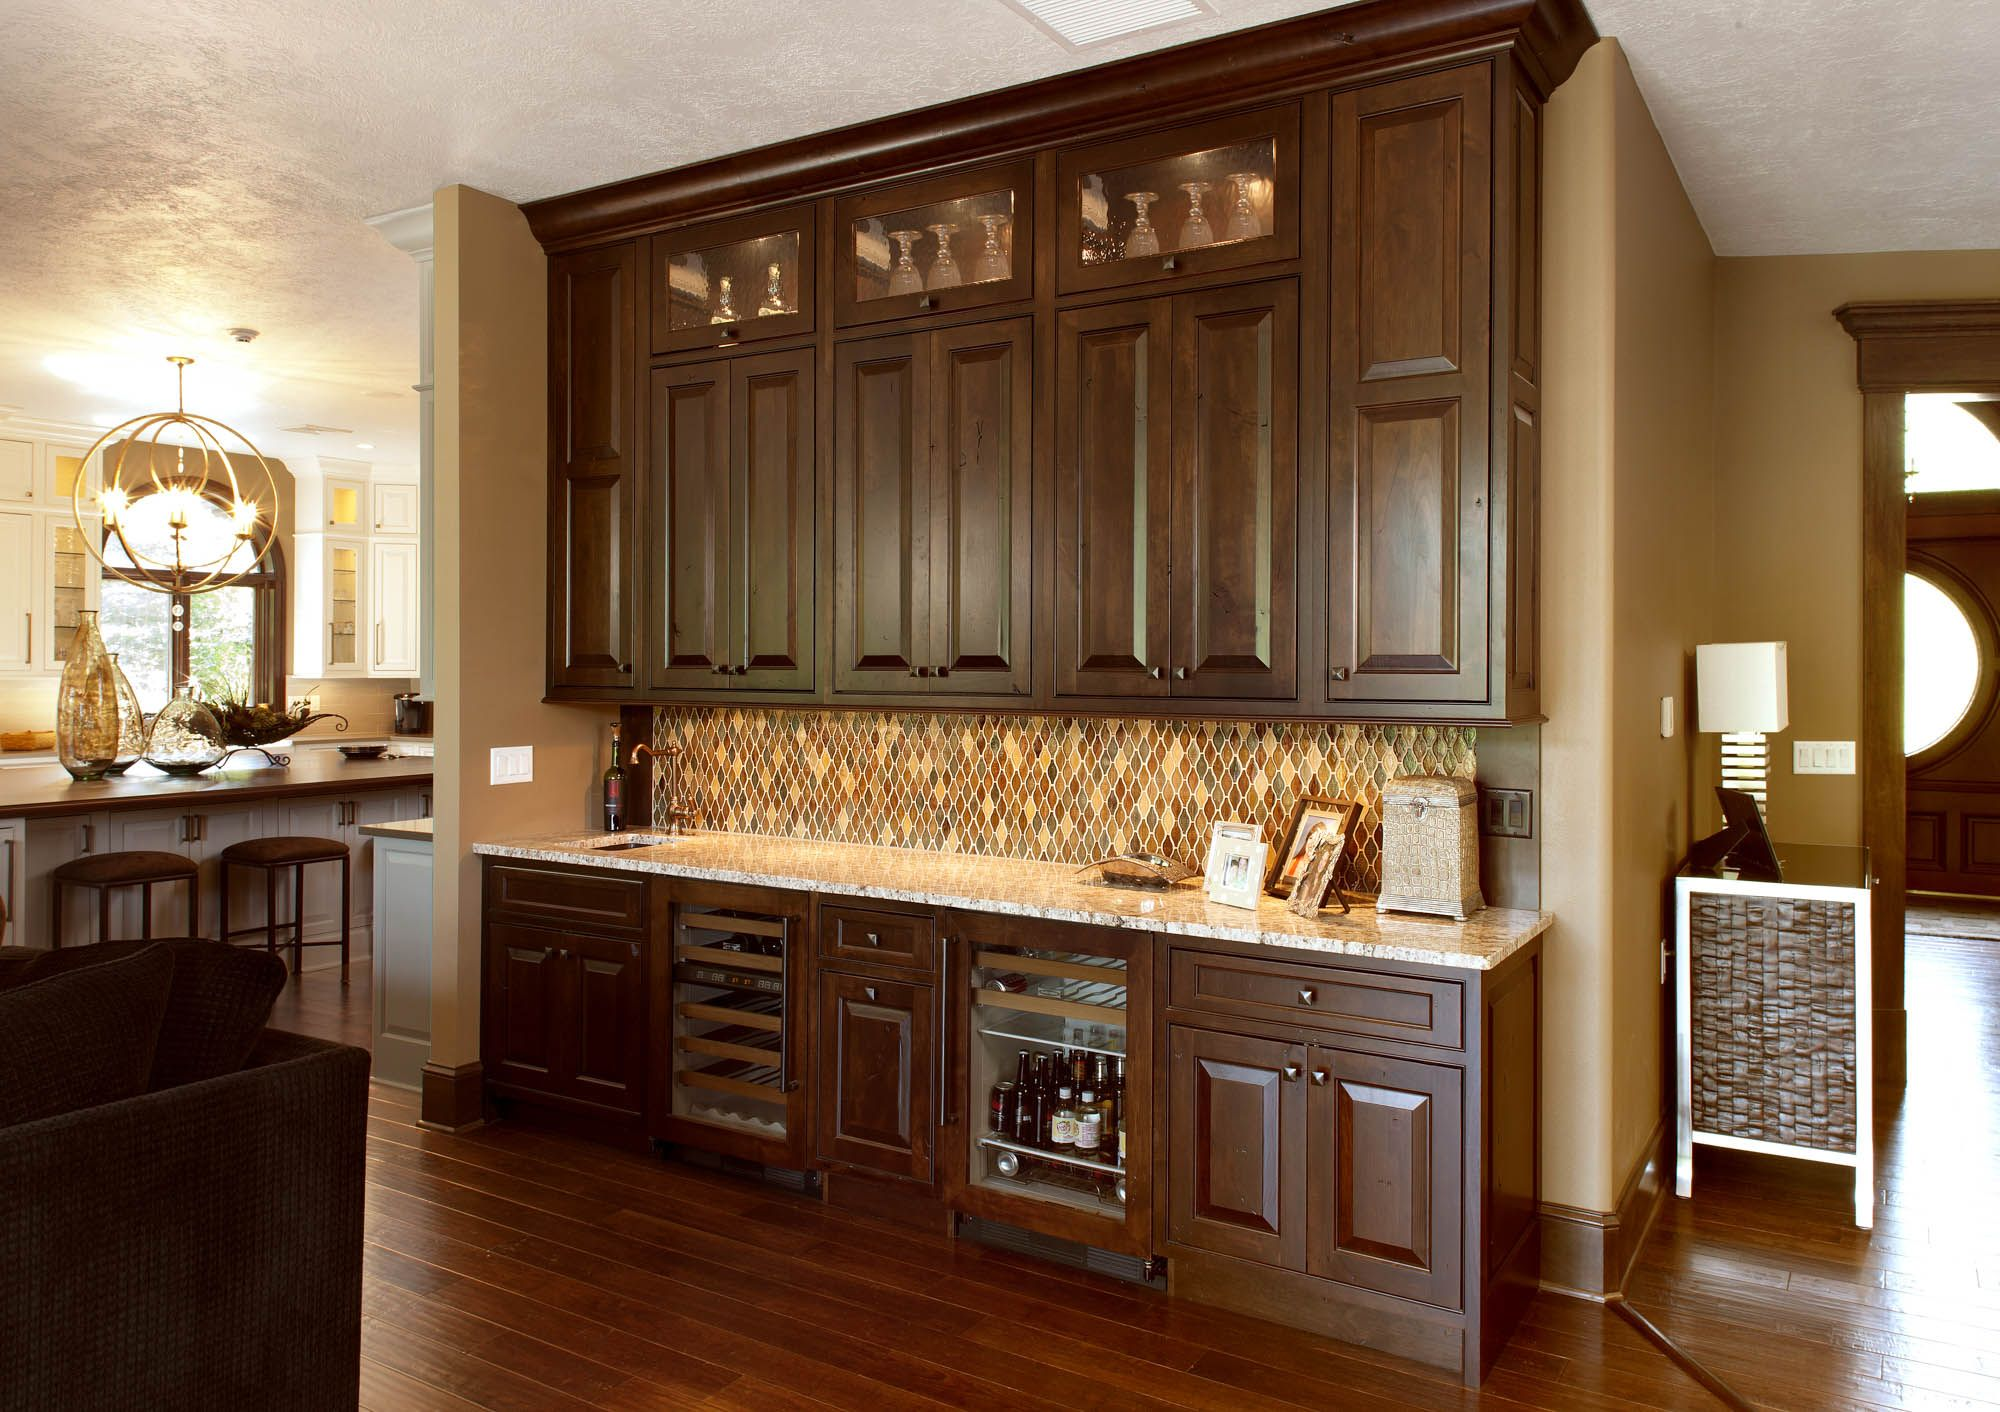 Spacious and Distinctive Kitchen, Kitchen pictures